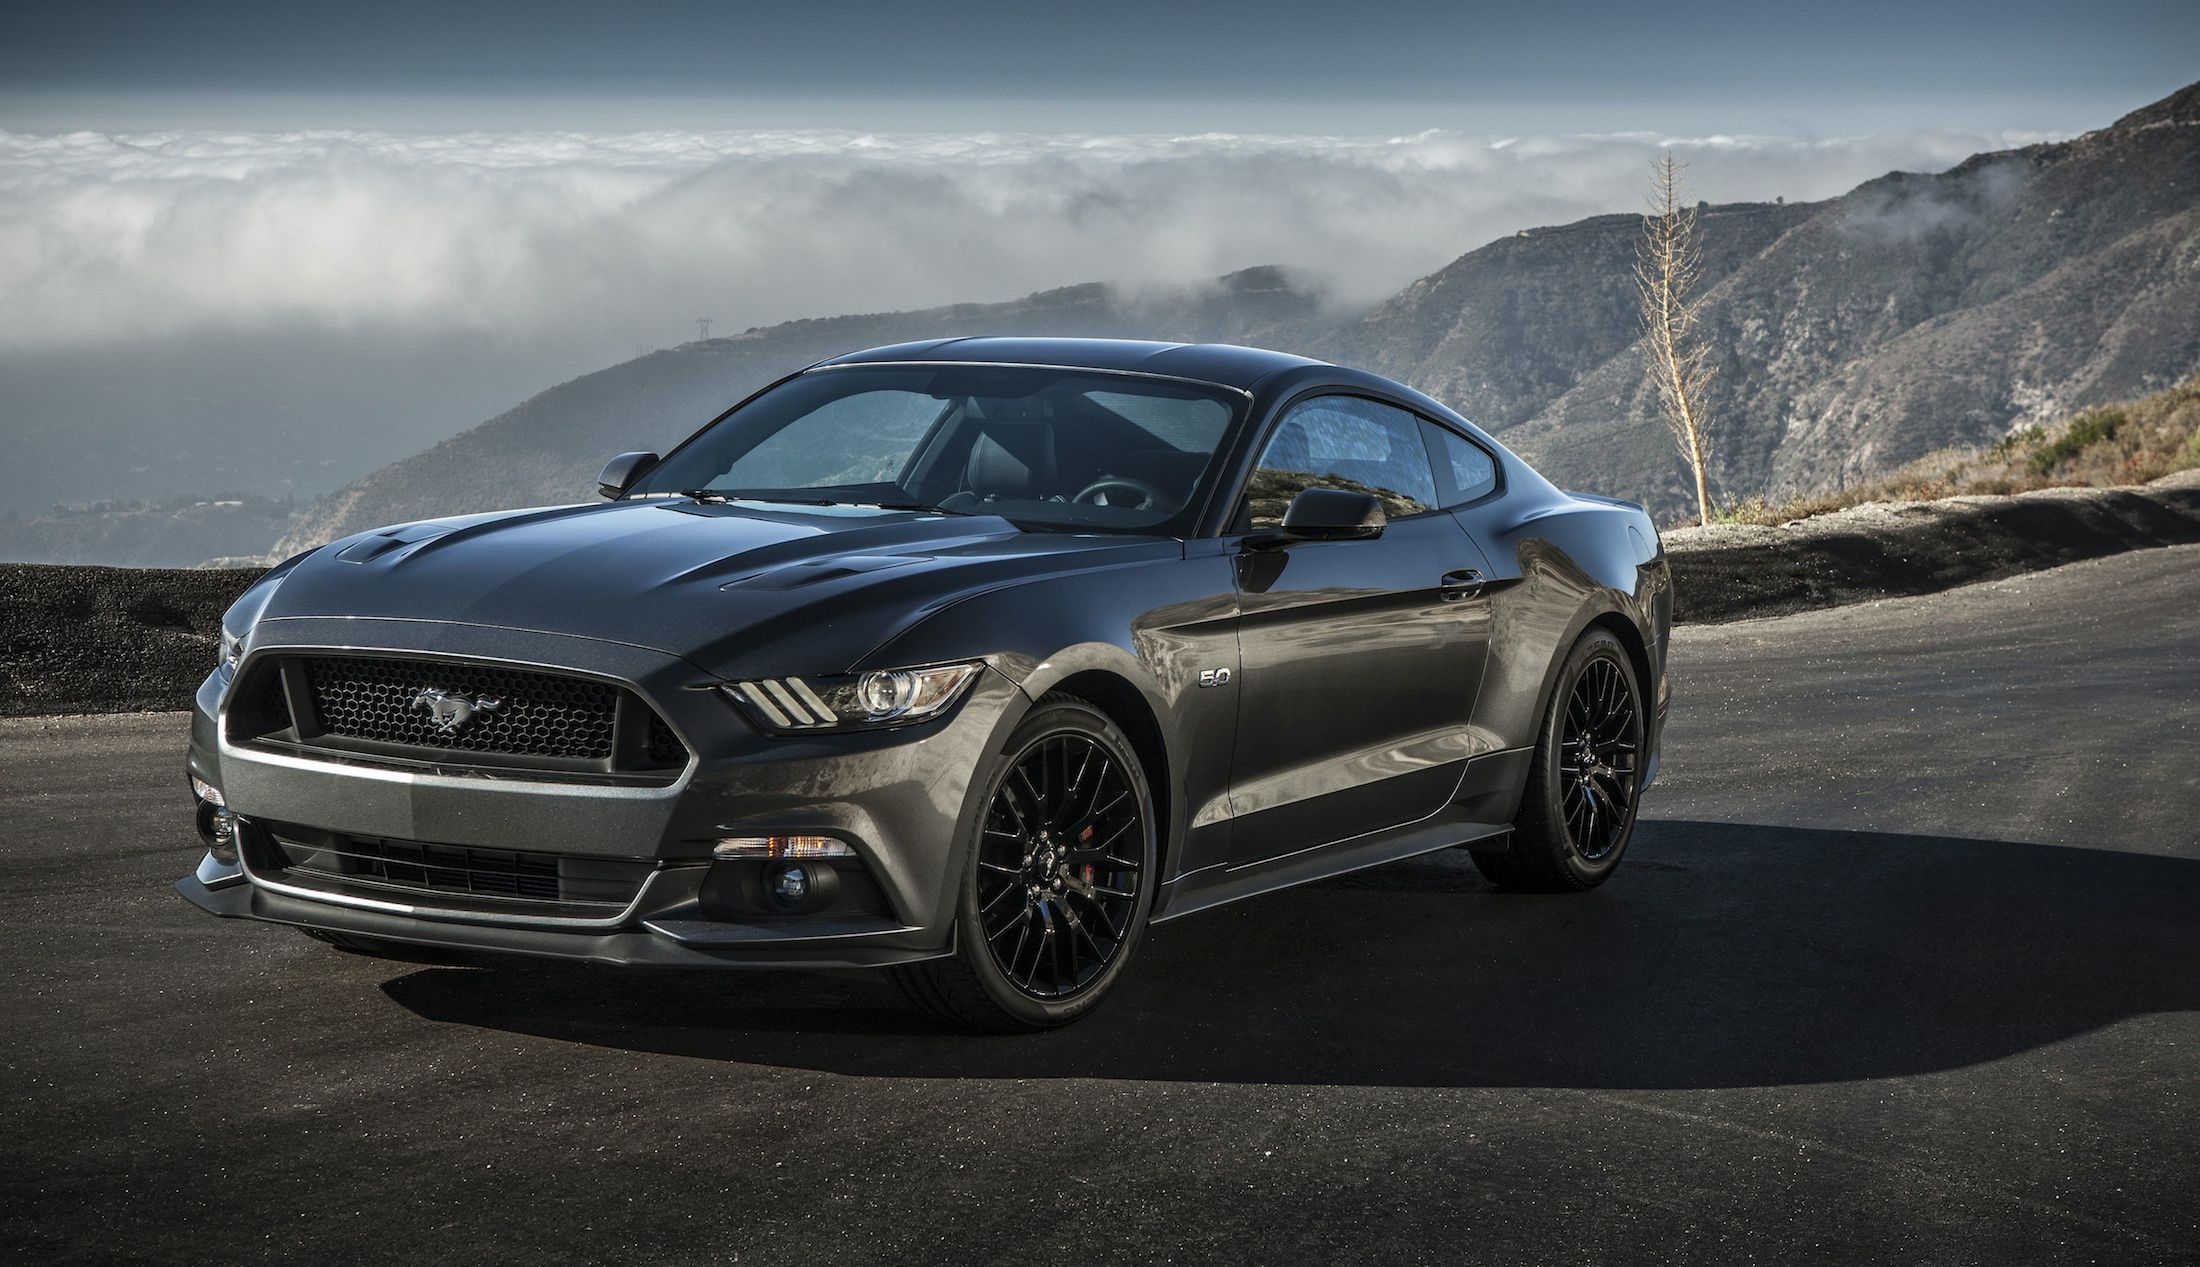 2015 Ford Mustang Review - photos | CarAdvice Mustang